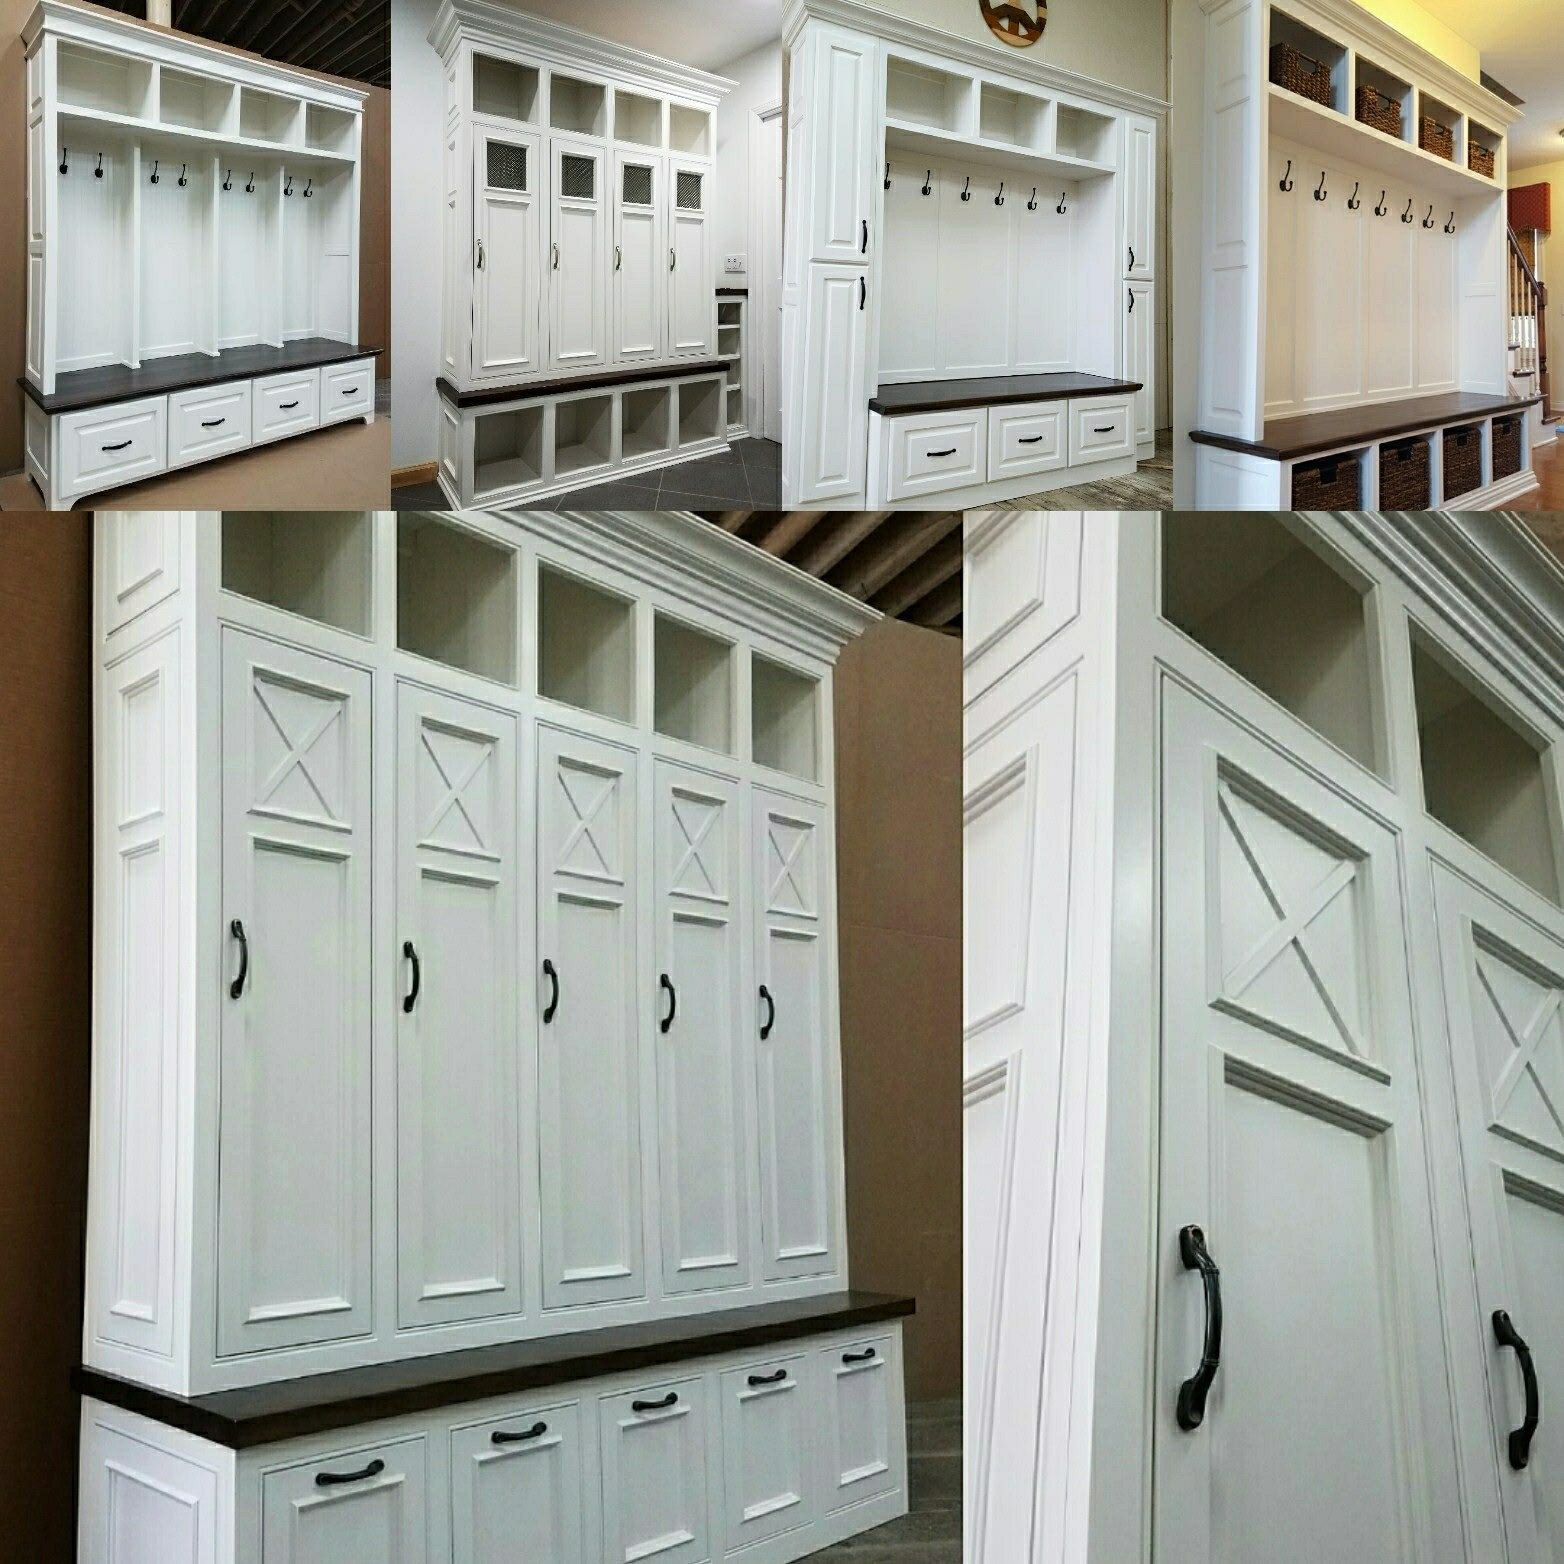 The Asheville Mudroom Lockers Storage Bench Cubbies Halltree Furniture Entryway Farmhouse Mudroom Mudroom Cabinets Custom Furniture